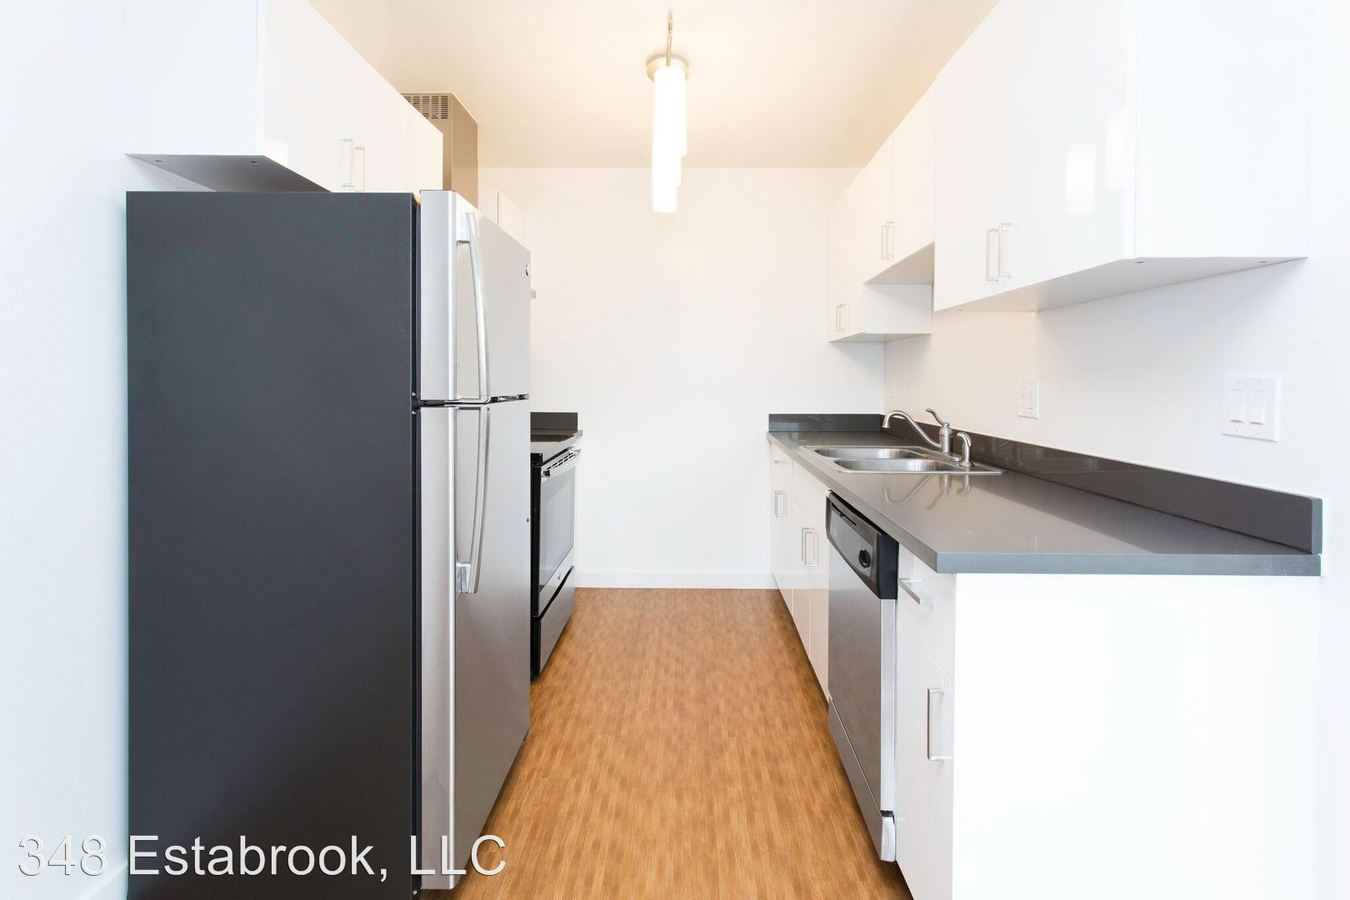 1 Bedroom 1 Bathroom Apartment for rent at 348 Estabrook in San Leandro, CA